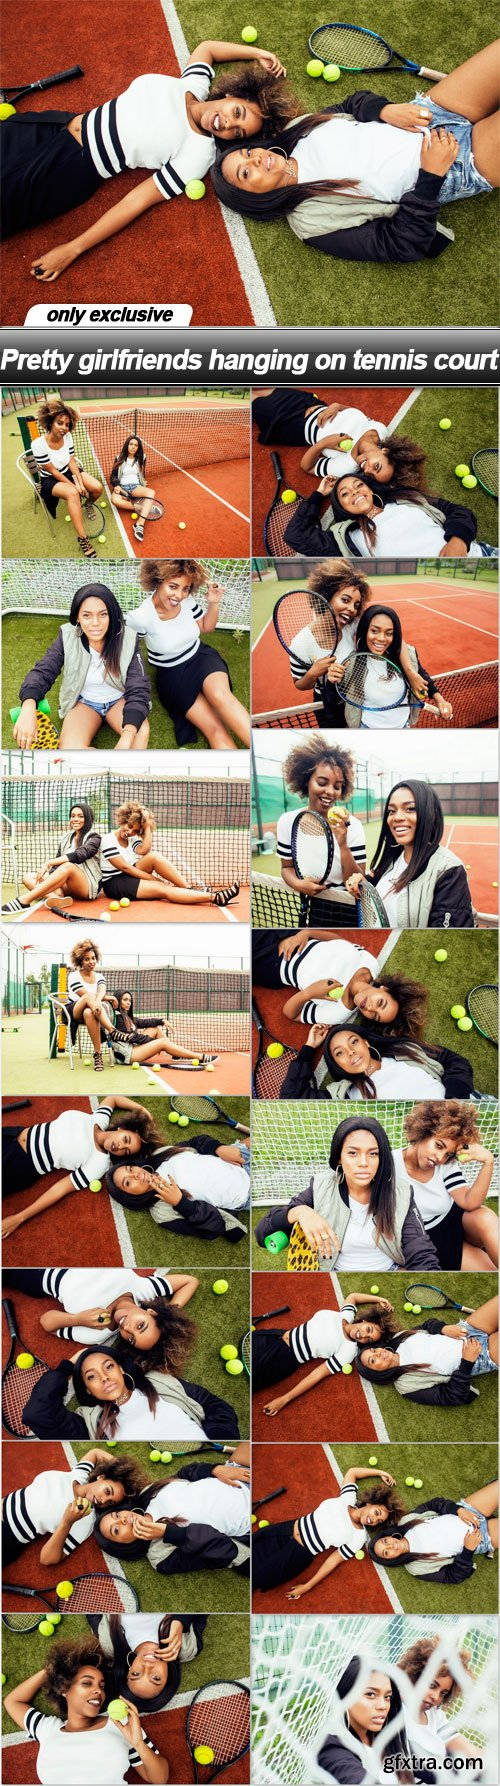 Pretty girlfriends hanging on tennis court - 16 UHQ JPEG